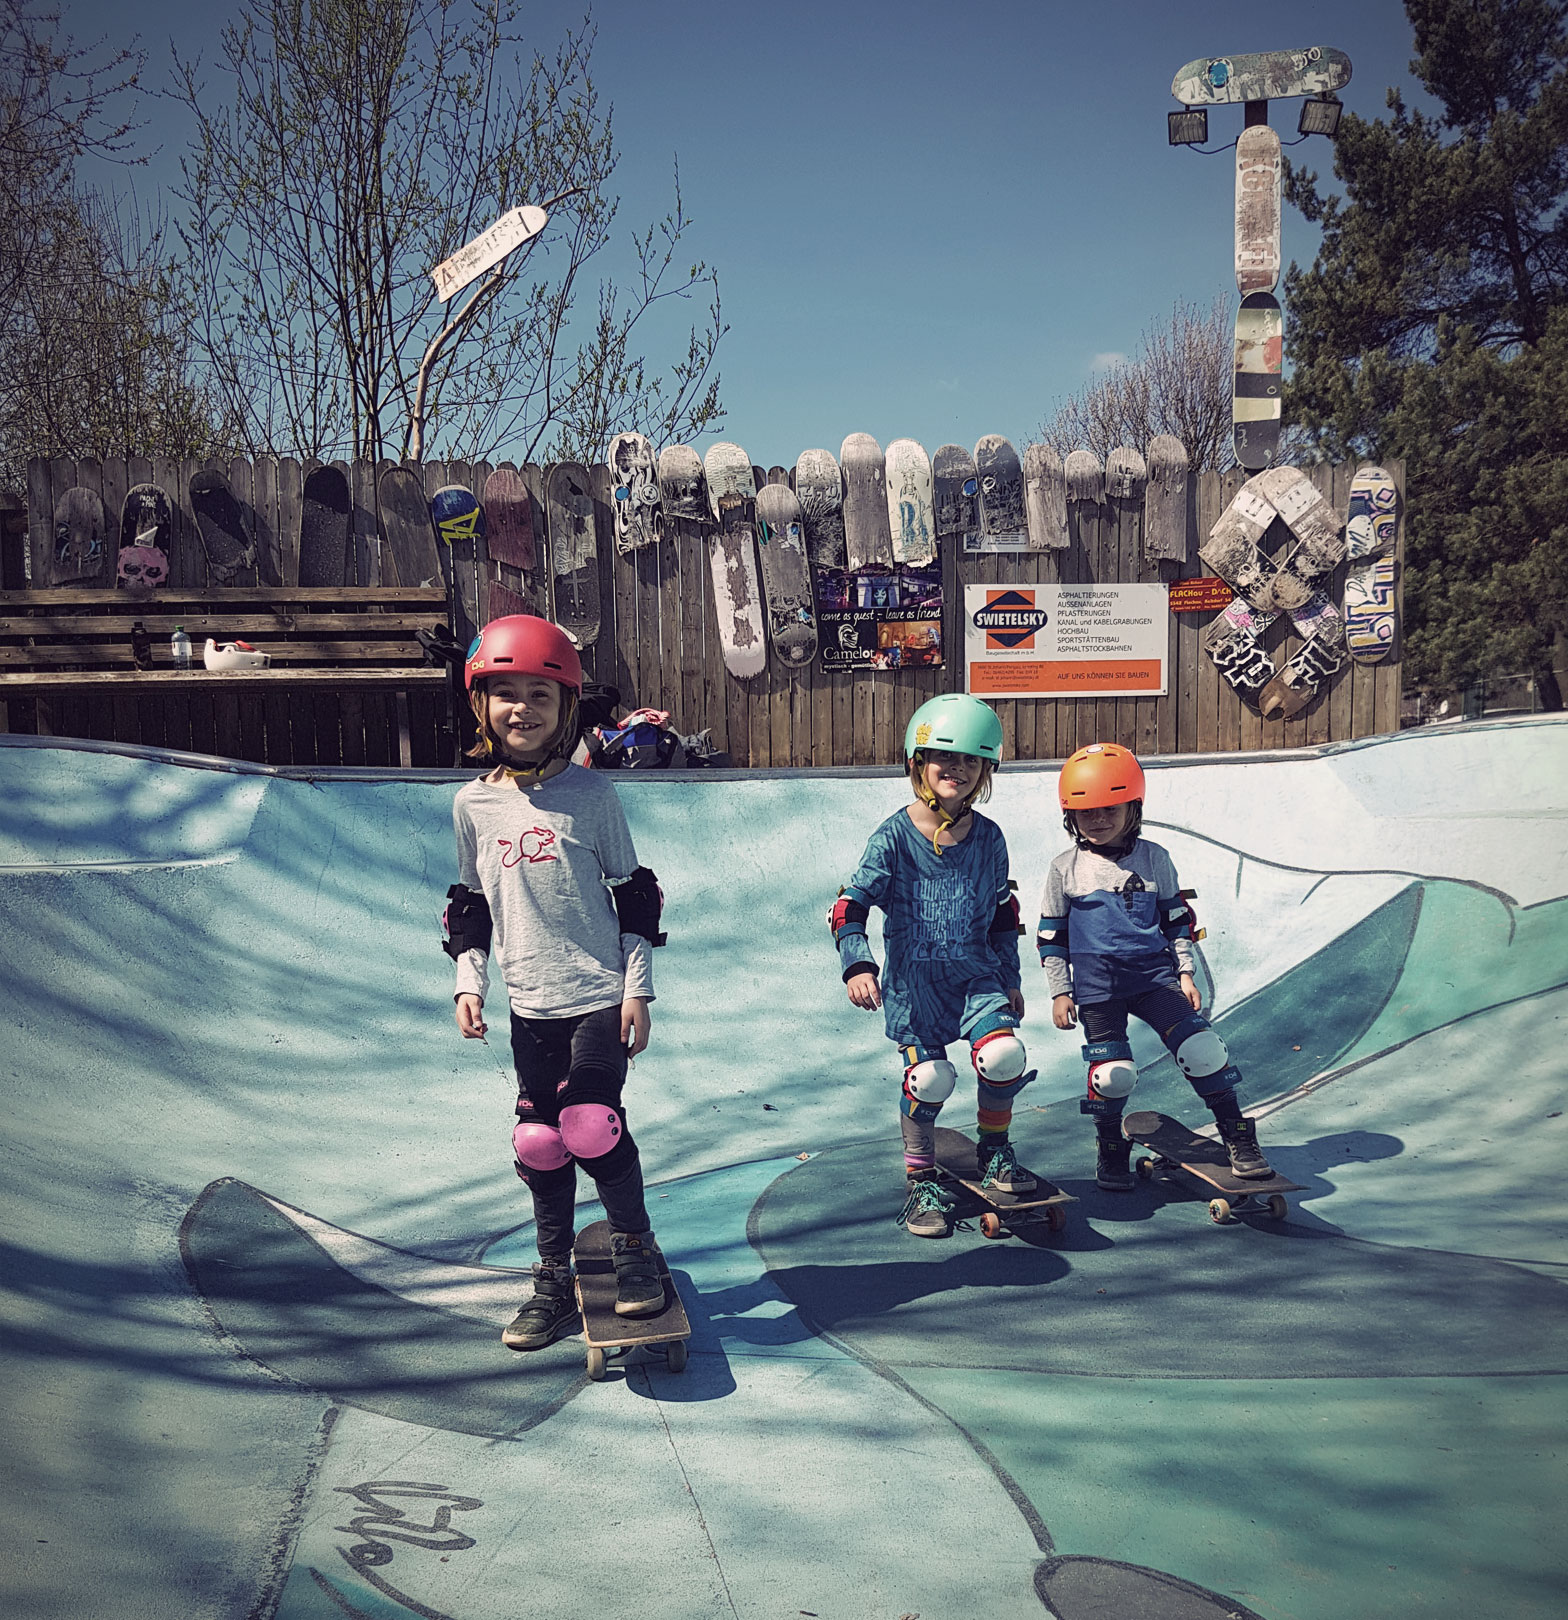 The Snowboarding Family - skateboarding with TSG skate protection